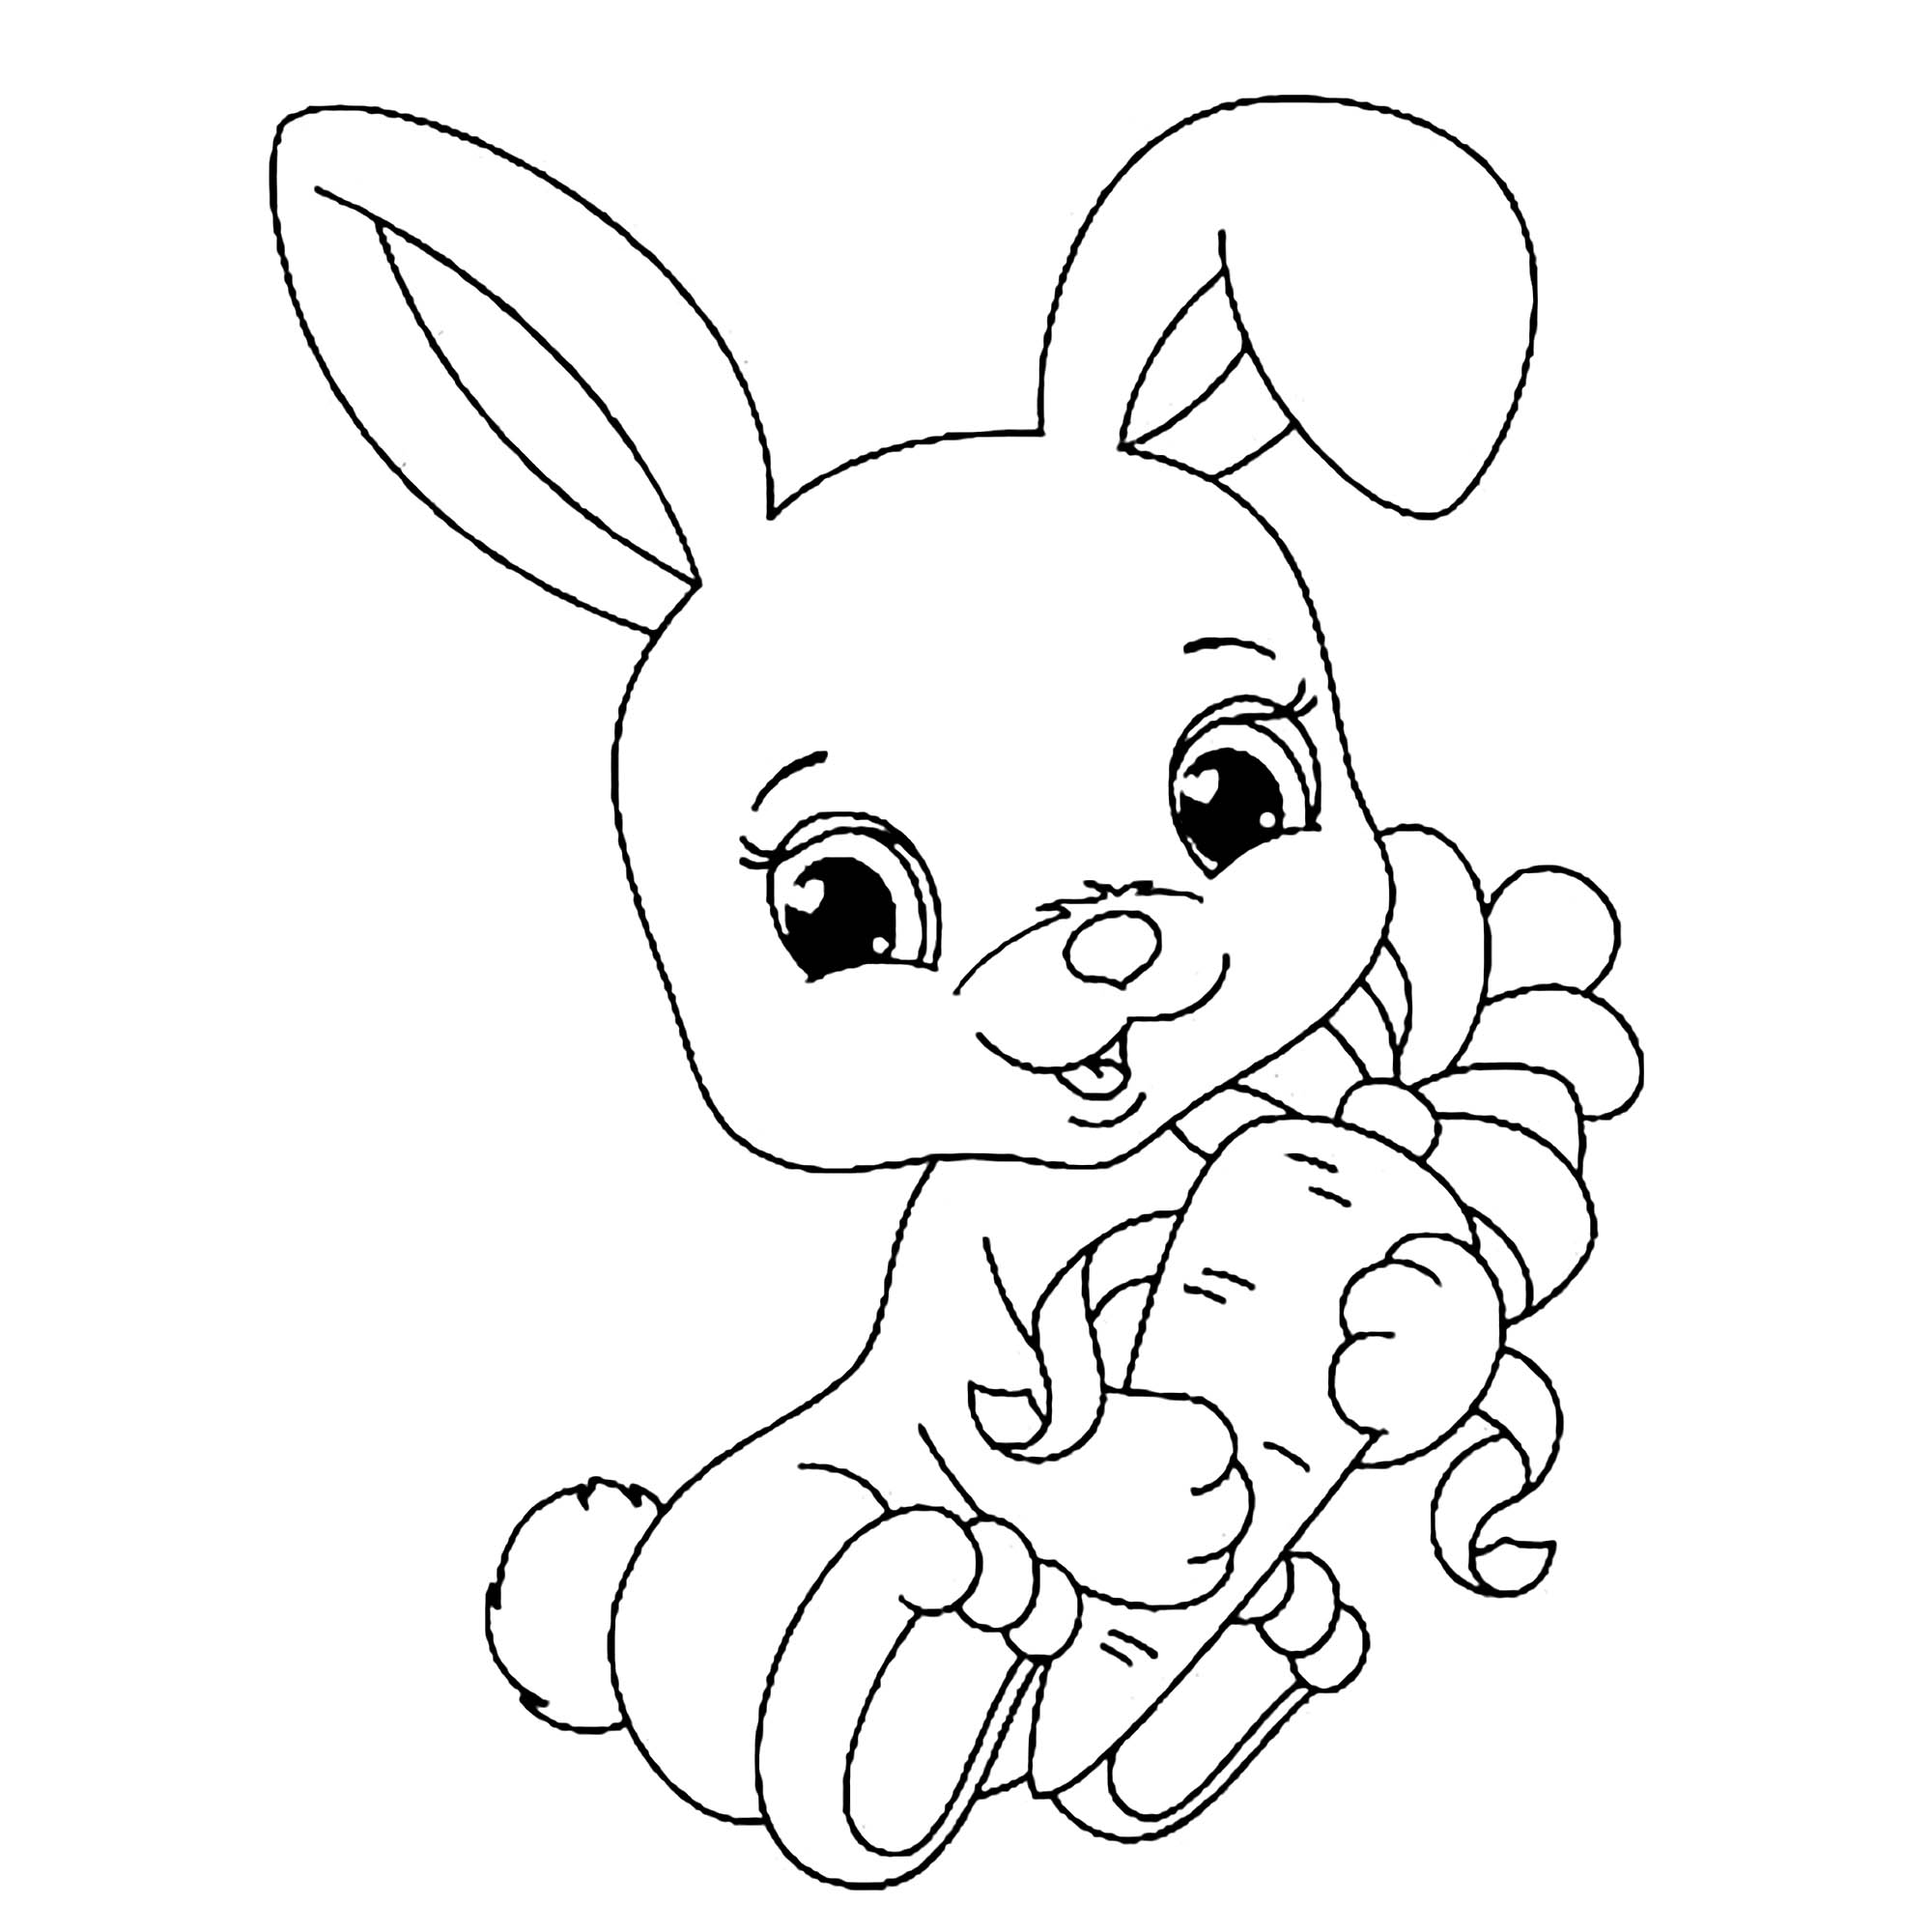 coloring pages of bunny rabbits rabbit to color for children rabbit kids coloring pages coloring of pages bunny rabbits